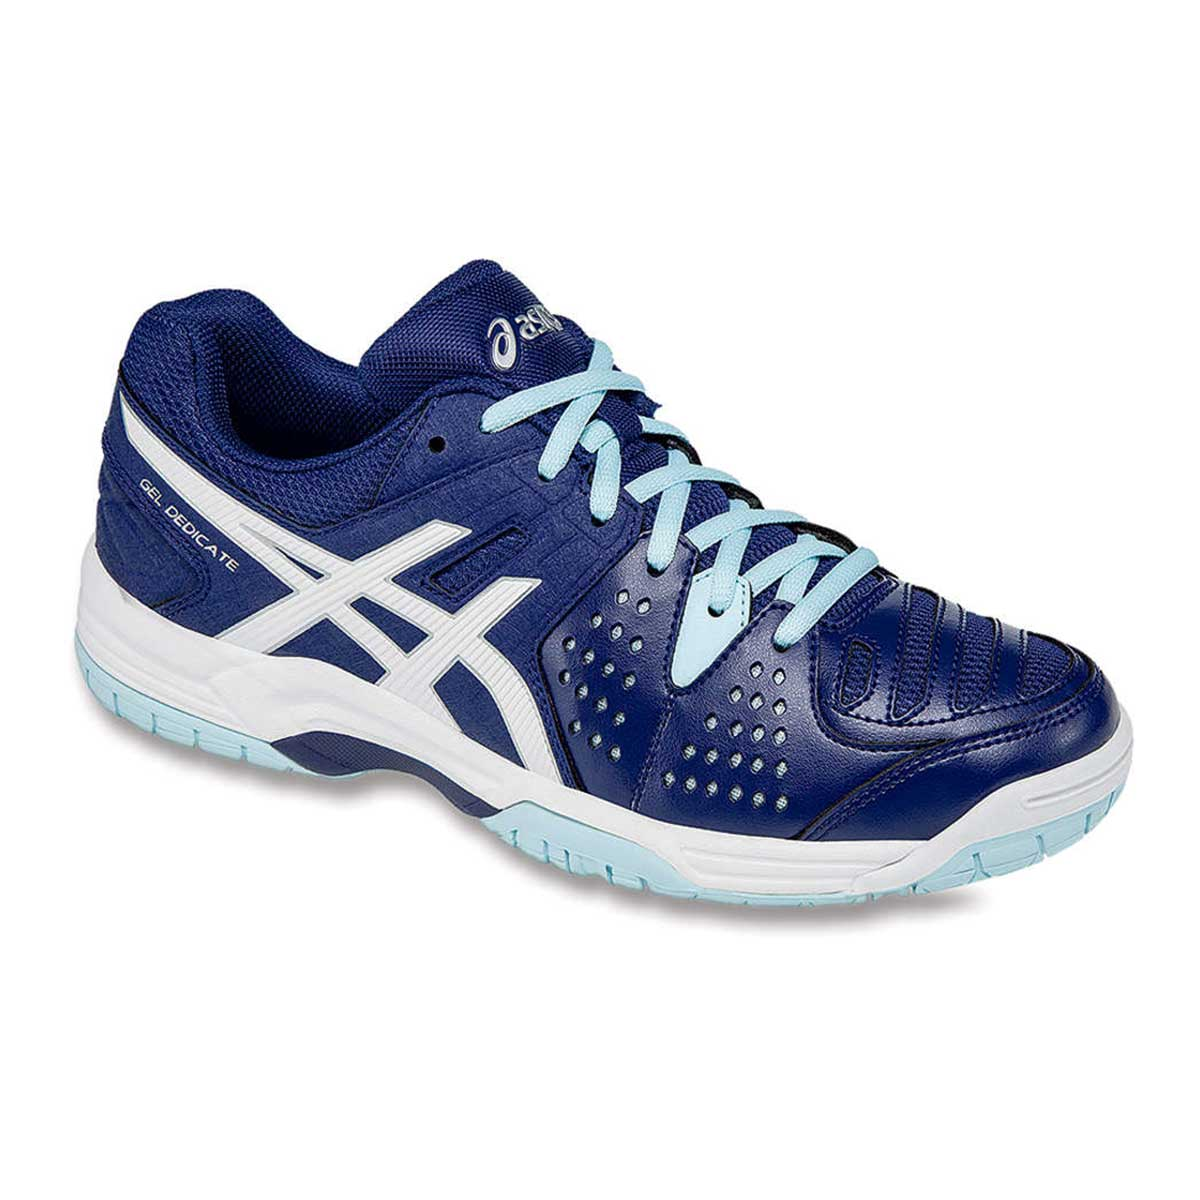 sells undefeated x shop best sellers Asics Gel-Dedicate 4 Womens' Tennis Shoes (Indigo/White/Crystal Blue)